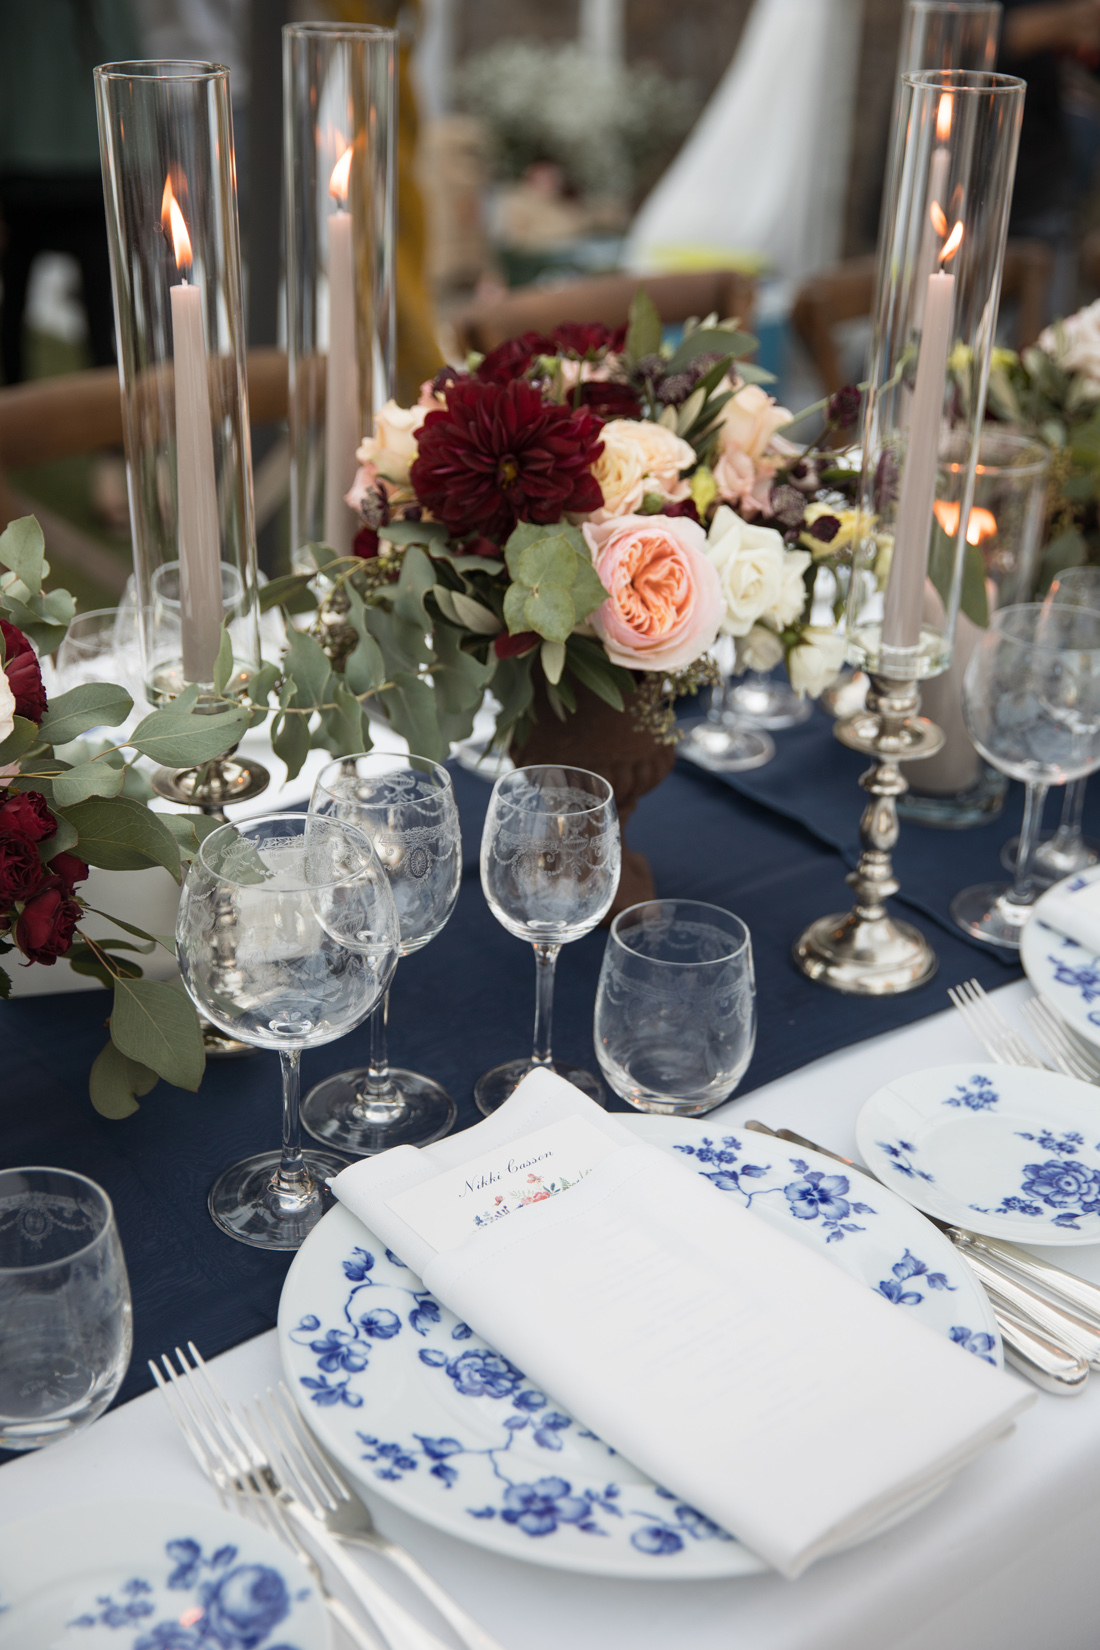 pantone color of the year 2020 classic blue wedding ideas blue white china reception